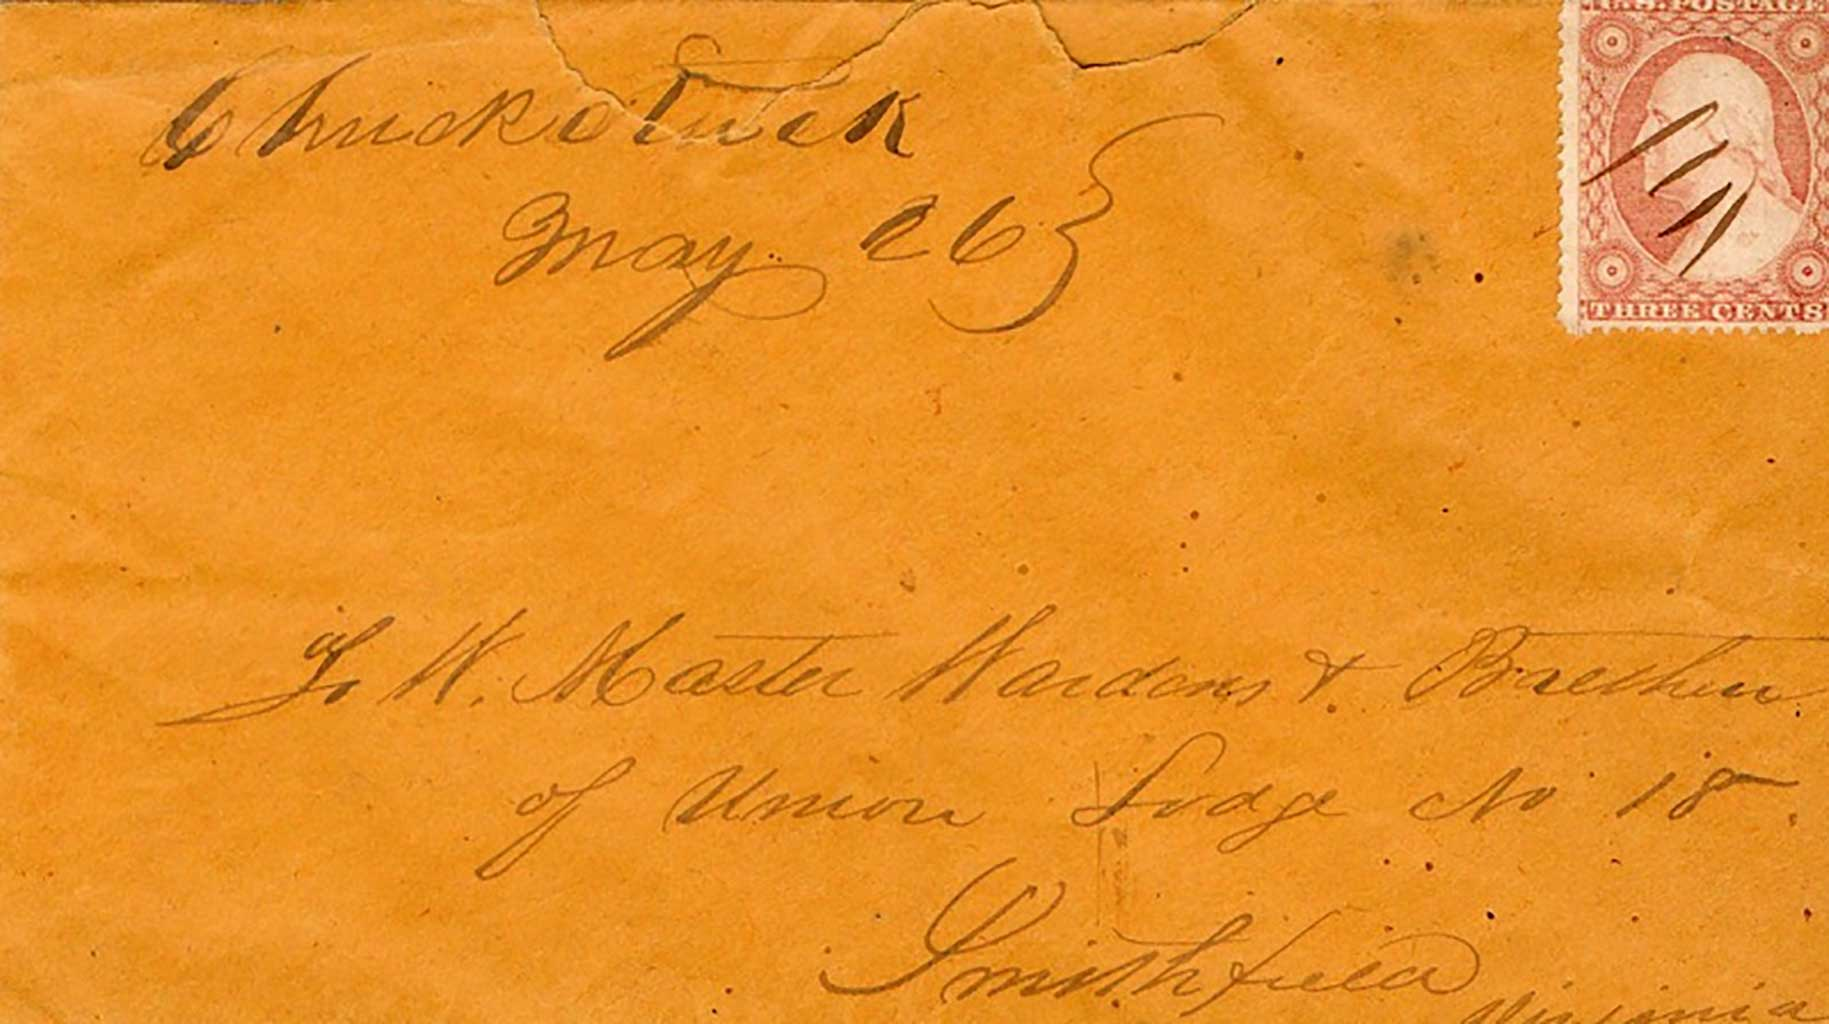 chuckatuck-canceled-envelope-after-1850-img156